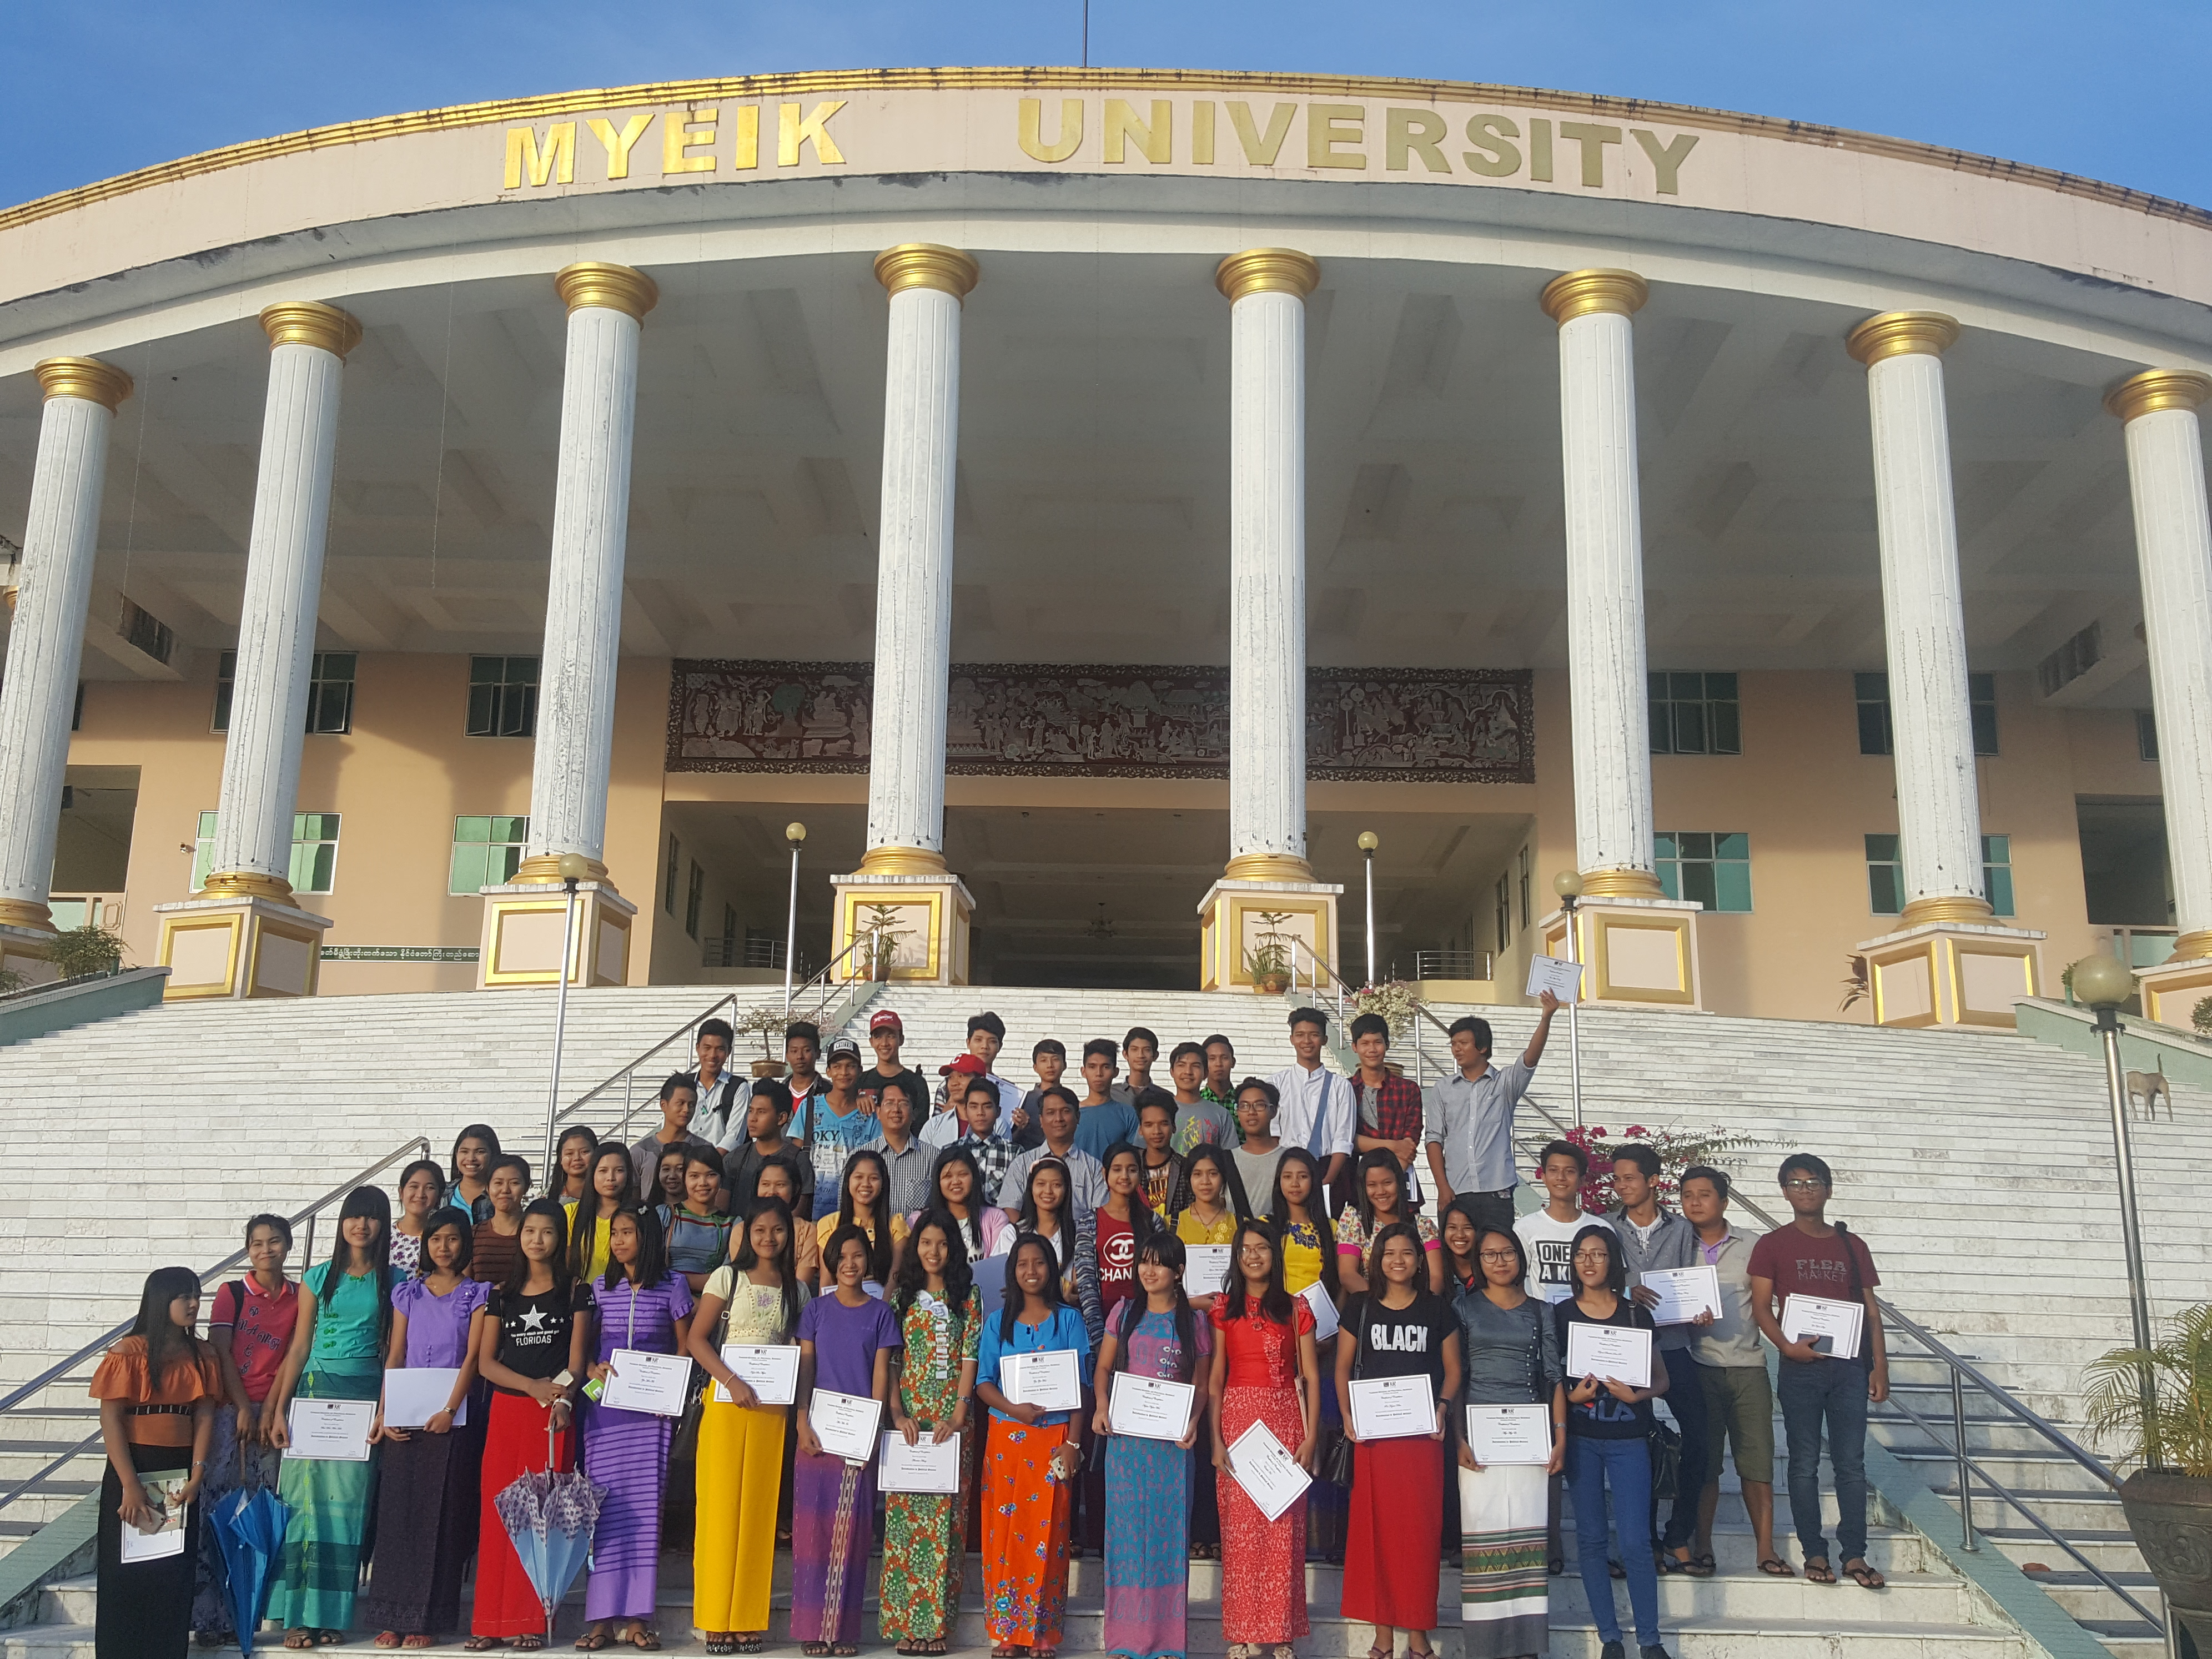 3-day basic political science training as an outreach program in Myeik University